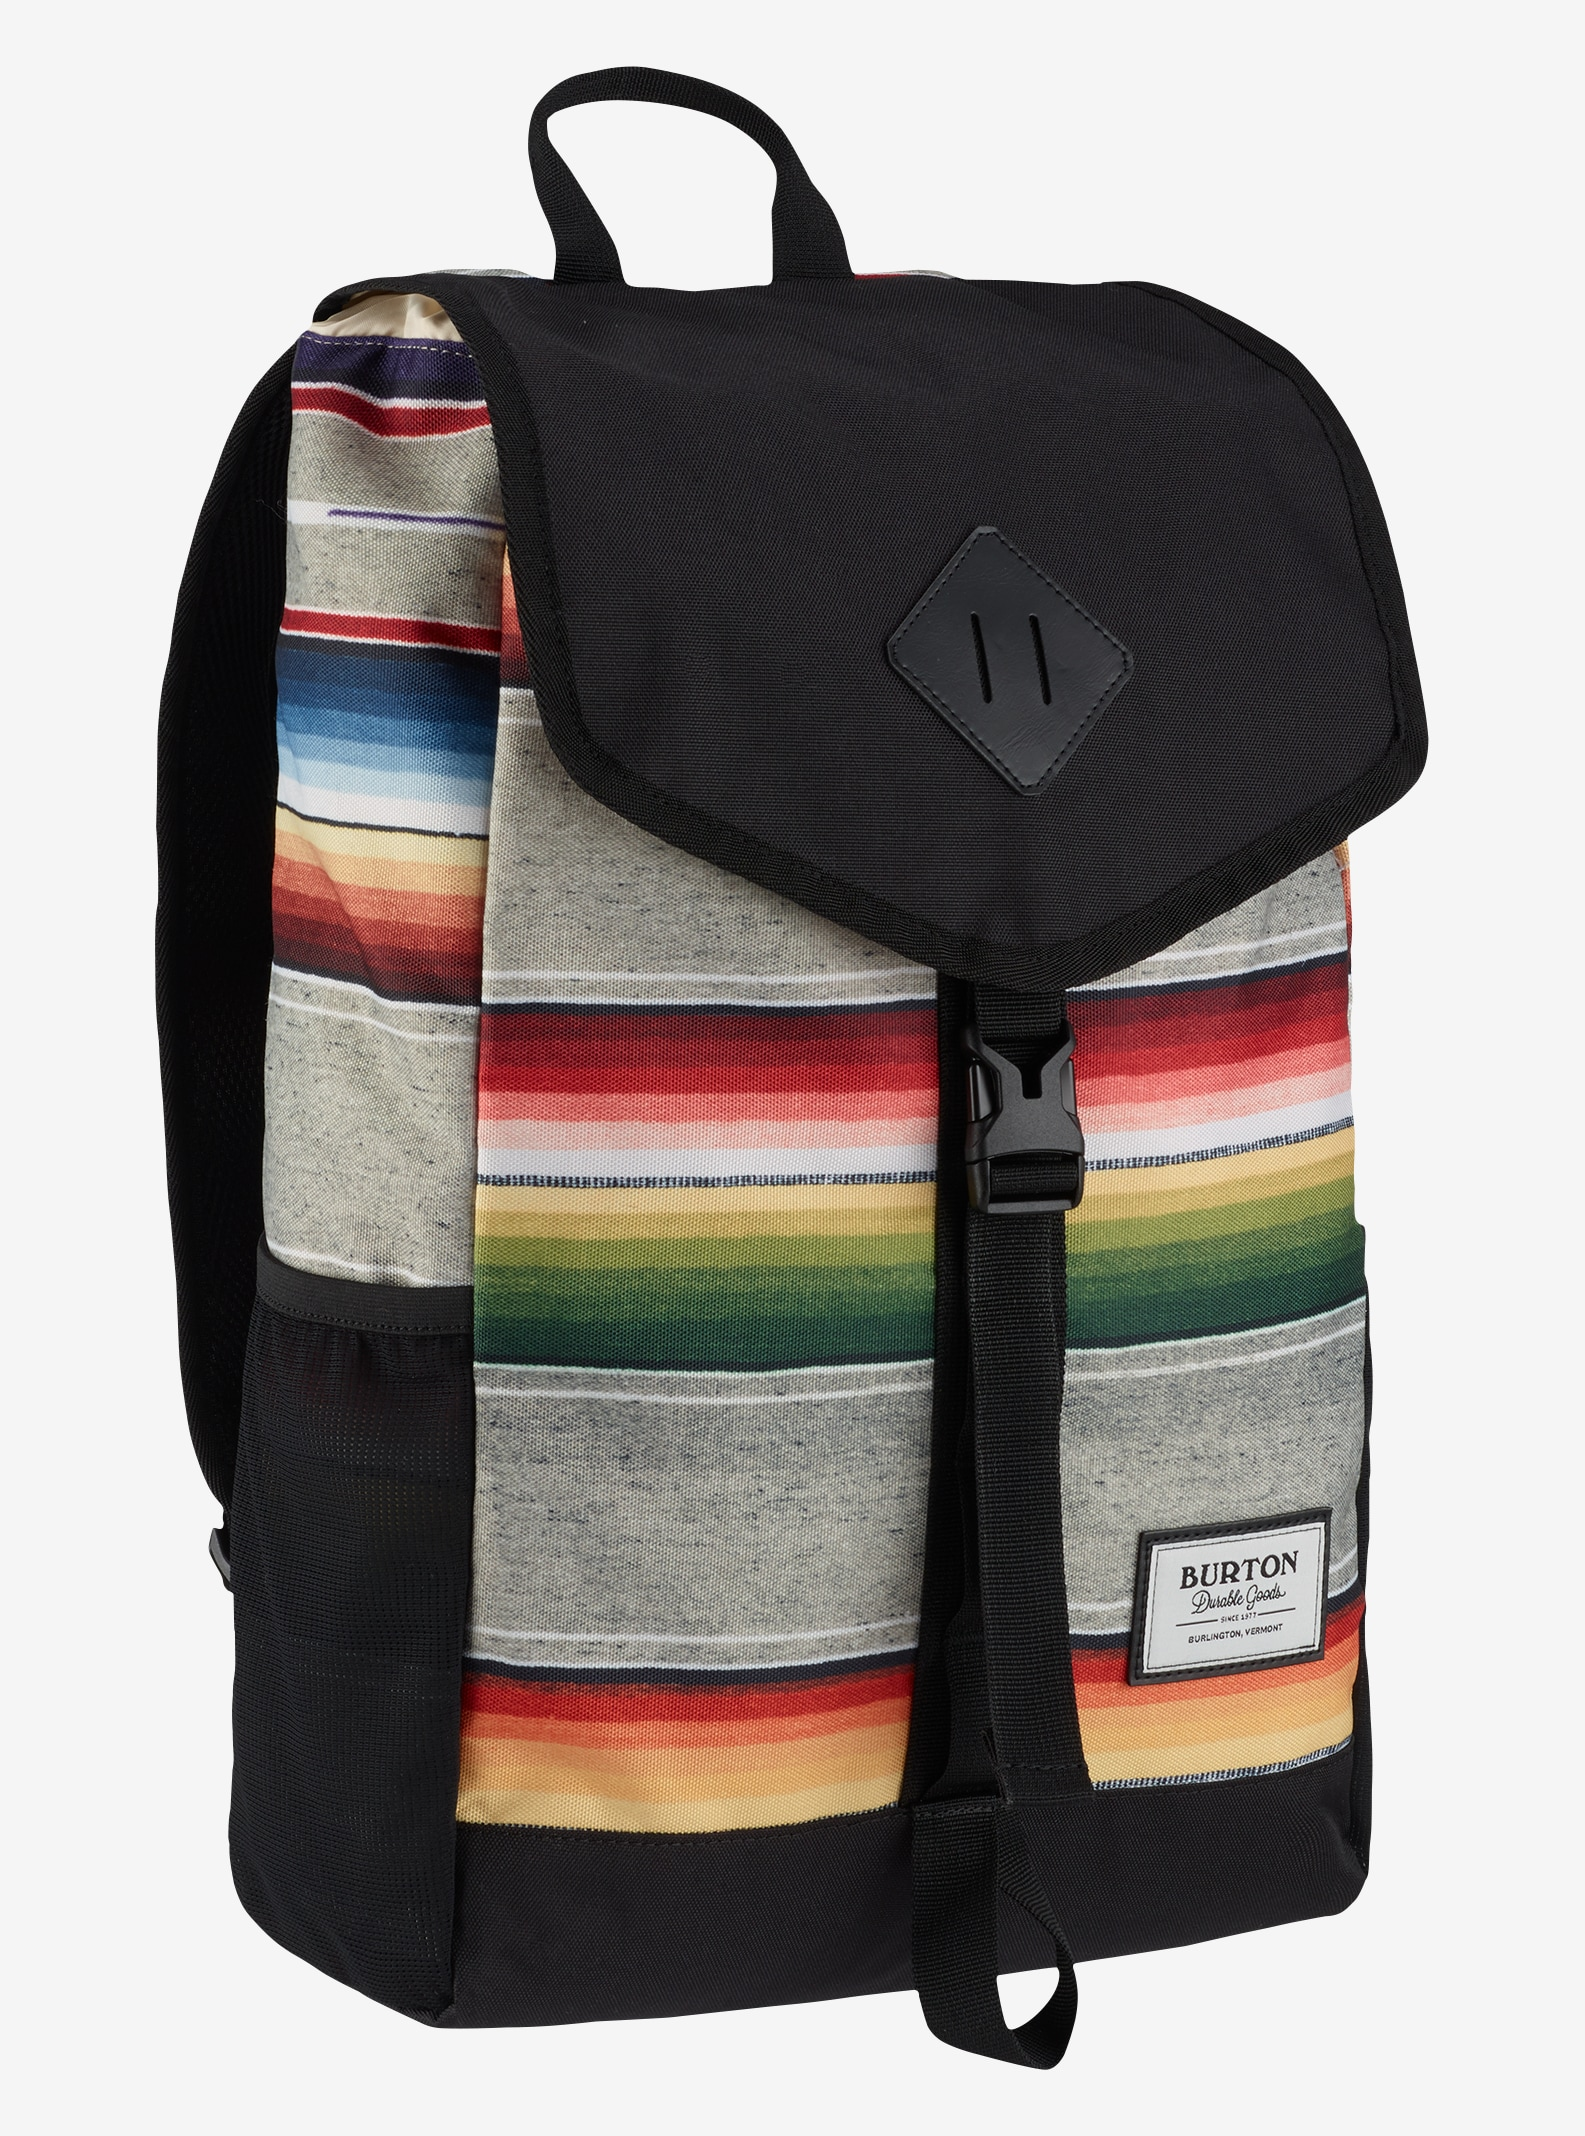 Burton Wesfall Backpack shown in Bright Sinola Stripe Print